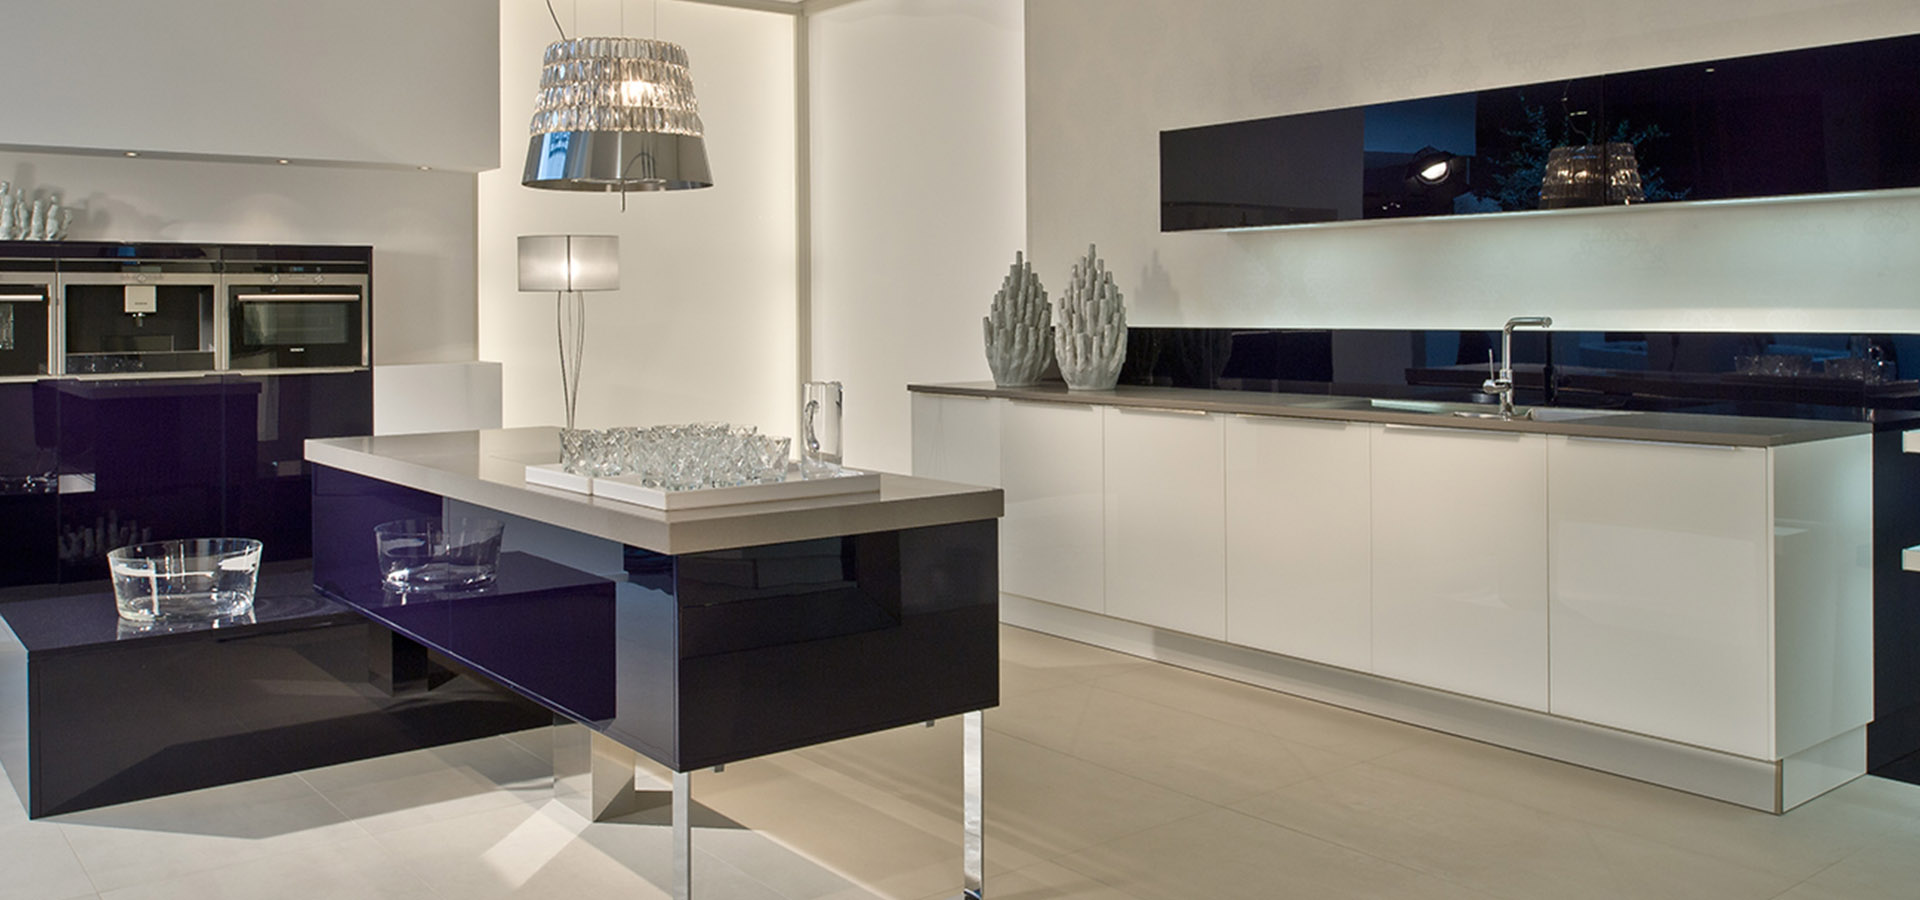 Modular Kitchen Interior Design Specialist